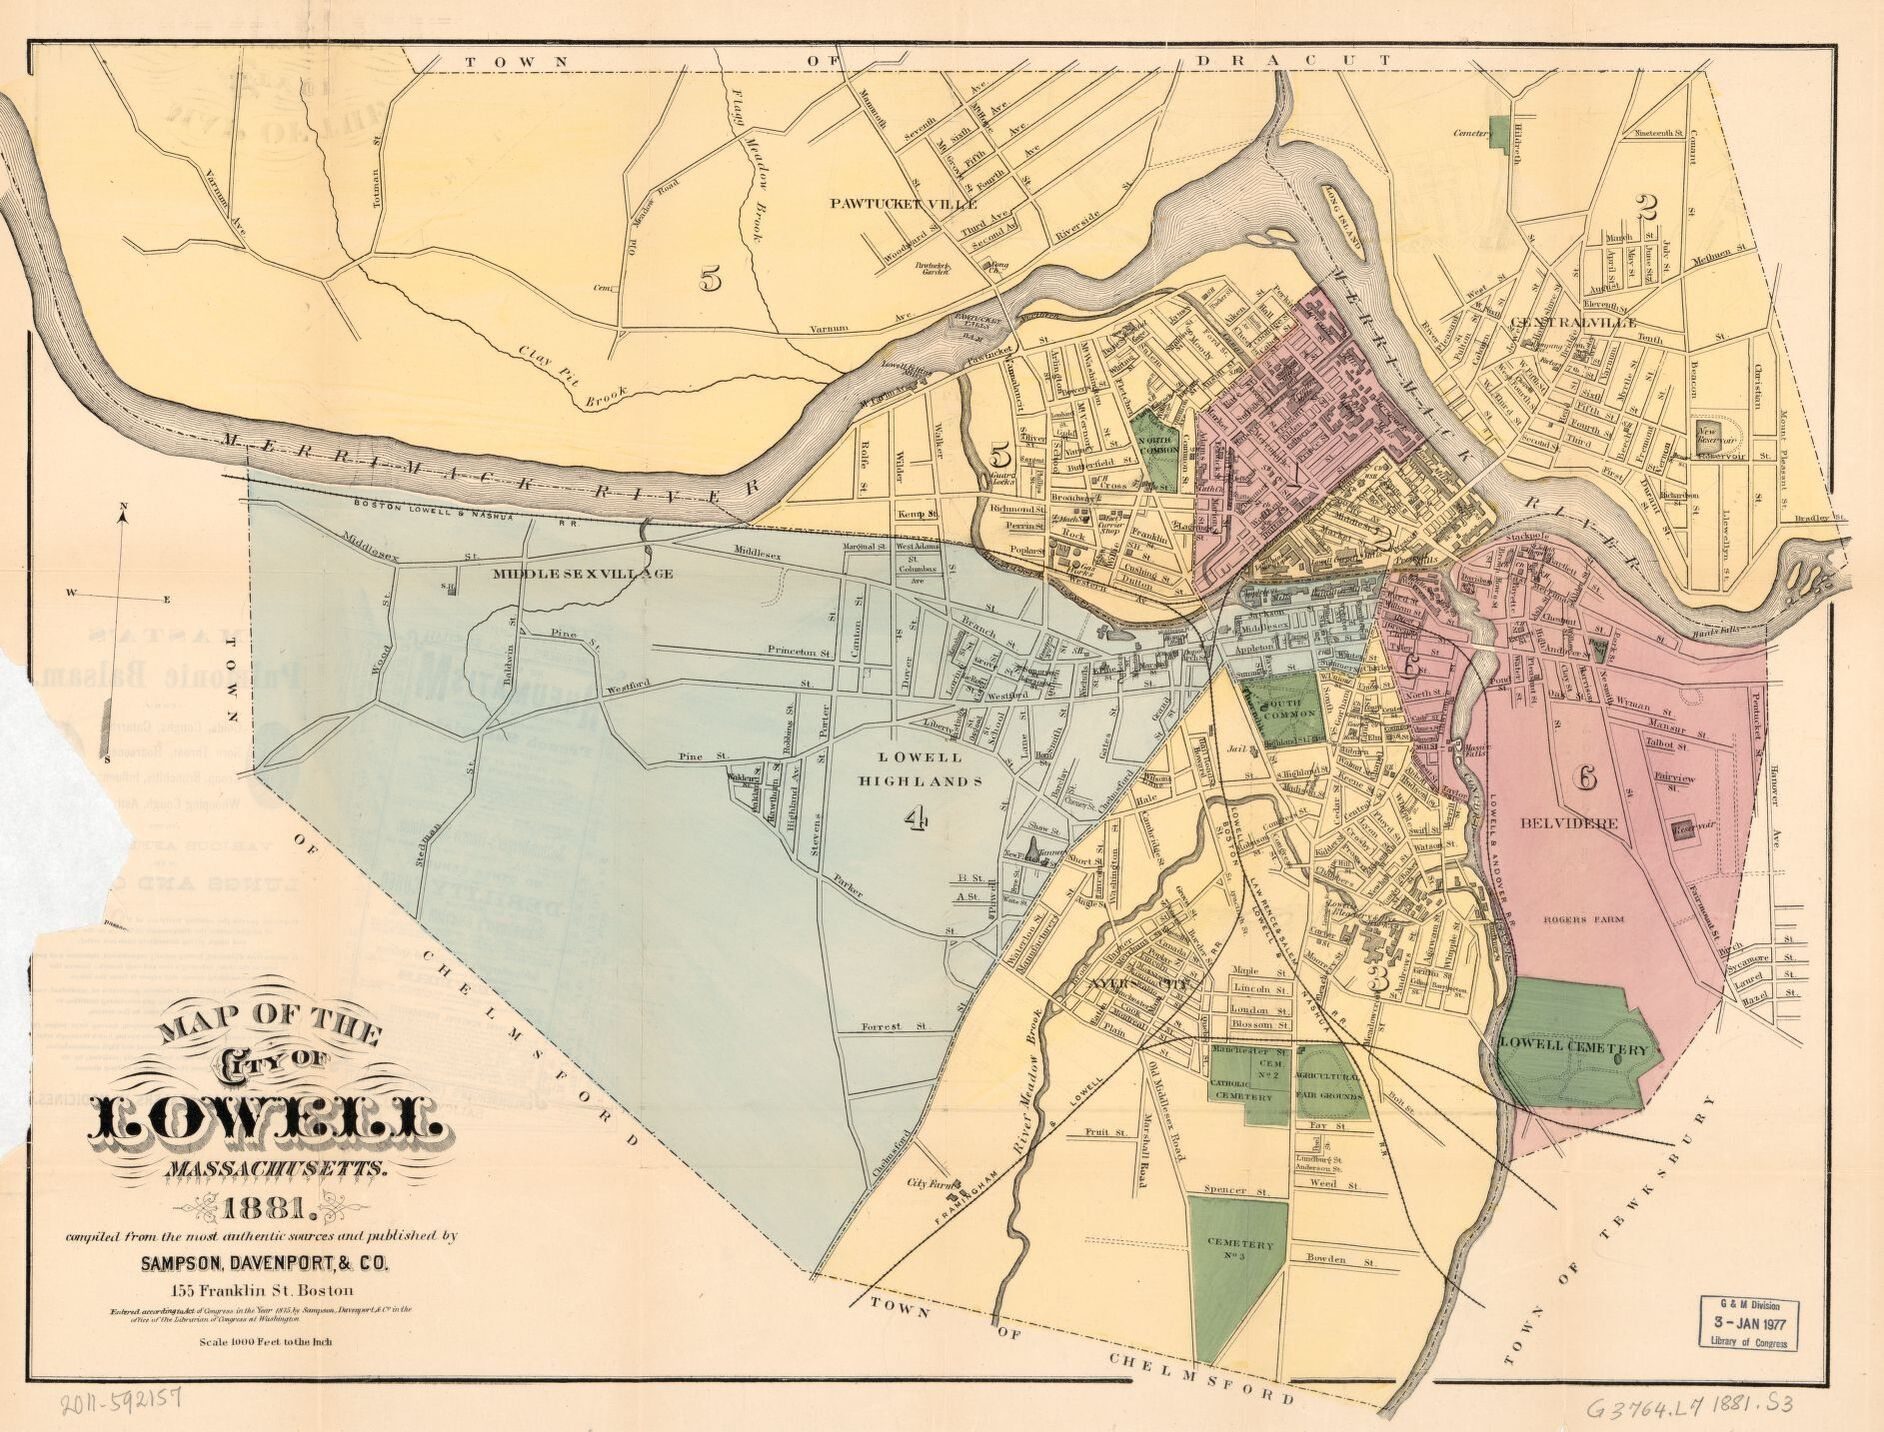 Map of Lowell in 1881. The mills are depicted along the Merrimack River and the density of settlement is very visibly increased in comparison with the 1821 map.